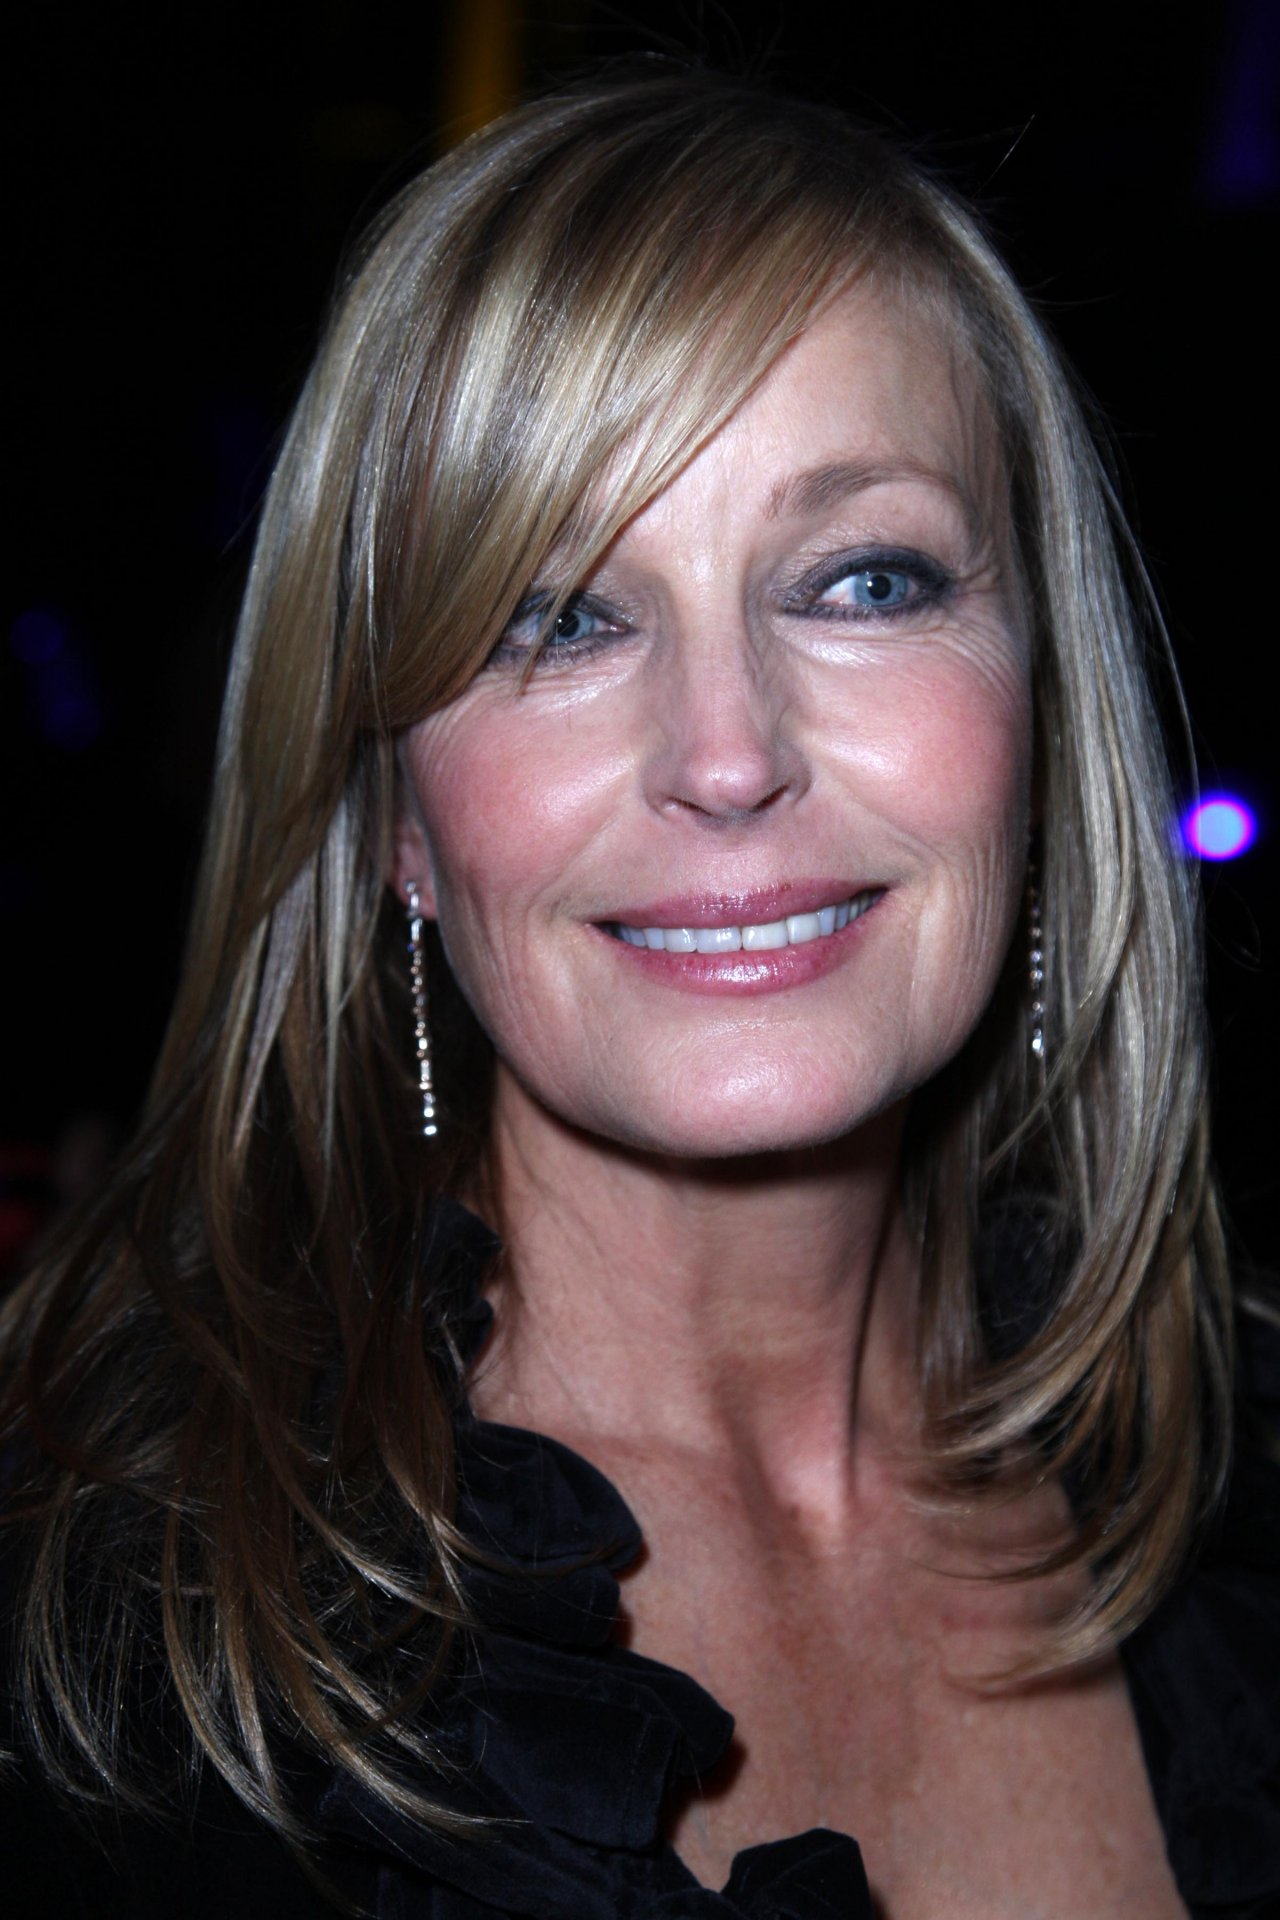 Bo derek wallpaper reanimators